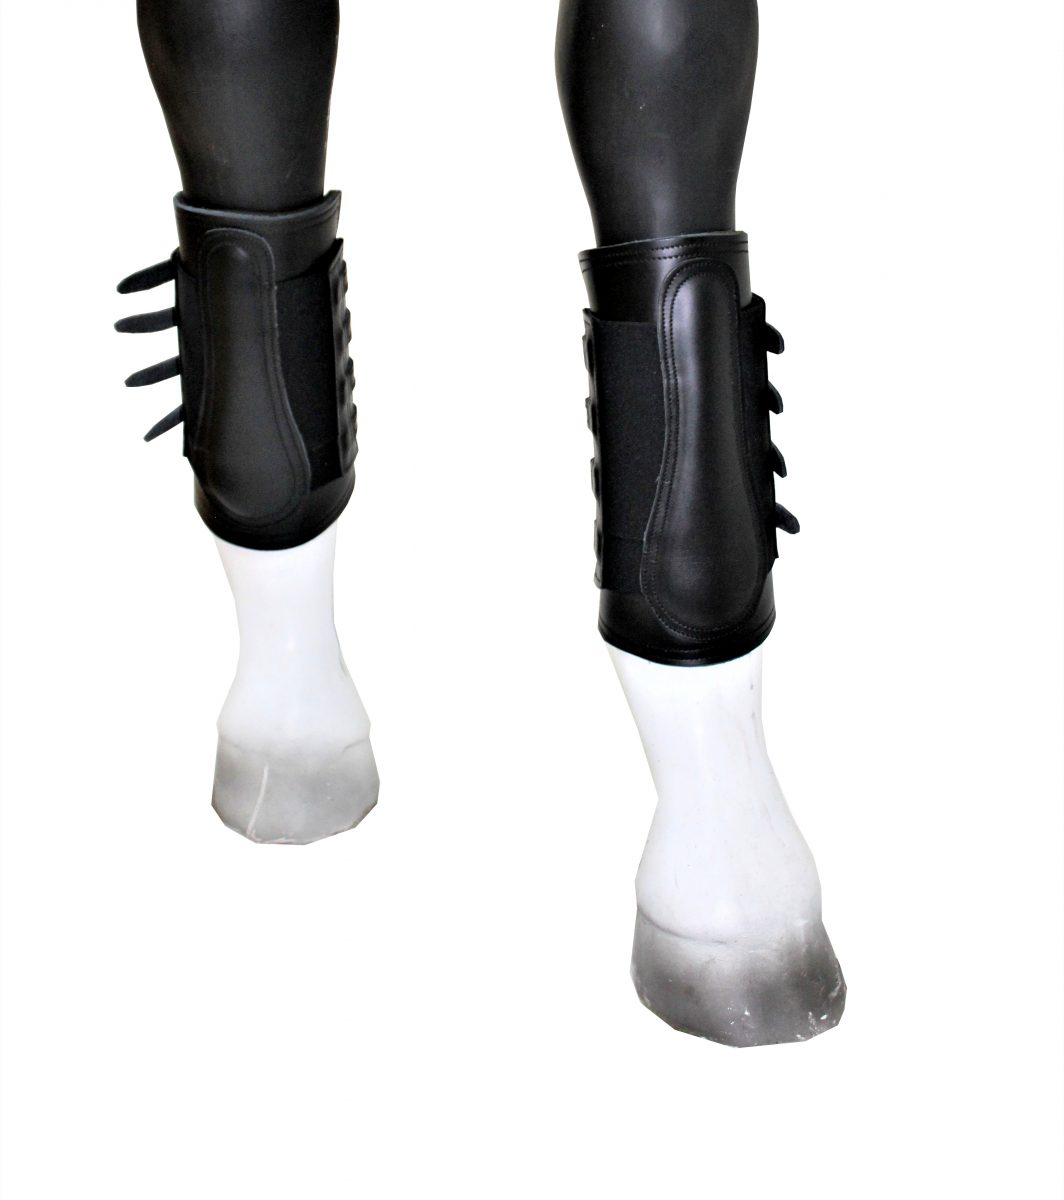 Horse Boots with Buckles